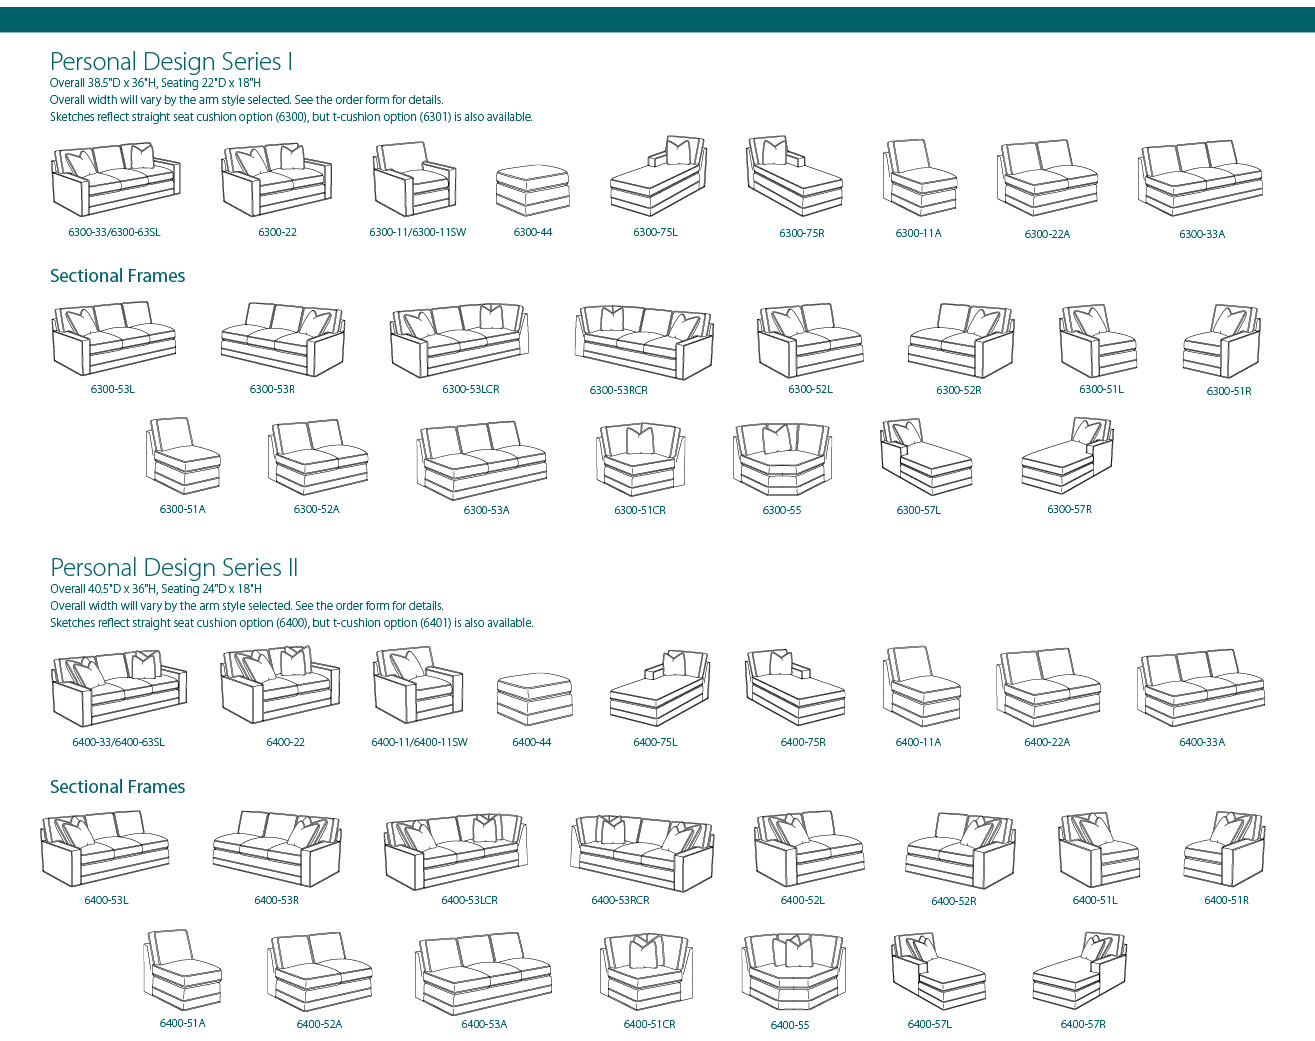 Personal Design Series I: Overall 38.5in D x 36in H, Seating 22in D x 18in H. Overall width will vary by the arm style selected. See the order form for details. Sketches reflect straight seat cushion option (6300), but t-cushion option (6301) is also available. 6300-33/6300-63SL, 6300-22, 6300-11/6300-11SW, 6300-44, 6300-75L, 6300-75R, 6300-11A, 6300-22A, 6300-33A. Sectional Frames: 6300-53L, 6300-53R, 6300-53LCR, 6300-53RCR, 6300-52L, 6300-52R, 6300-51L, 6300-51R, 6300-51A, 6300-52A, 6300-53A, 6300-51CR, 6300-55, 6300-57L, 6300-57R. Personal Design Series II: Overall 40.5in D x 36in H, seating 24in D x 18in H. Overall width will vary by the arm style selected. Se the order form for details. Sketches reflect straight seat cushion option (6400), but t-cushion option (6401) is also available.  6400-33/6400-63SL, 6400-22, 6400-11/6400-11SW, 6400-44, 6400-75L, 6400-75R, 6400-11A, 6400-22A, 6400-33A. Sectional Frames: 6400-53L, 6400-53R, 6400-53LCR, 6400-53RCR, 6400-52L, 6400-52R, 6400-51L, 6400-51R, 6400-51A, 6400-52A, 6400-53A, 6400-51CR, 6400-55, 6400-57L, 6400-57R